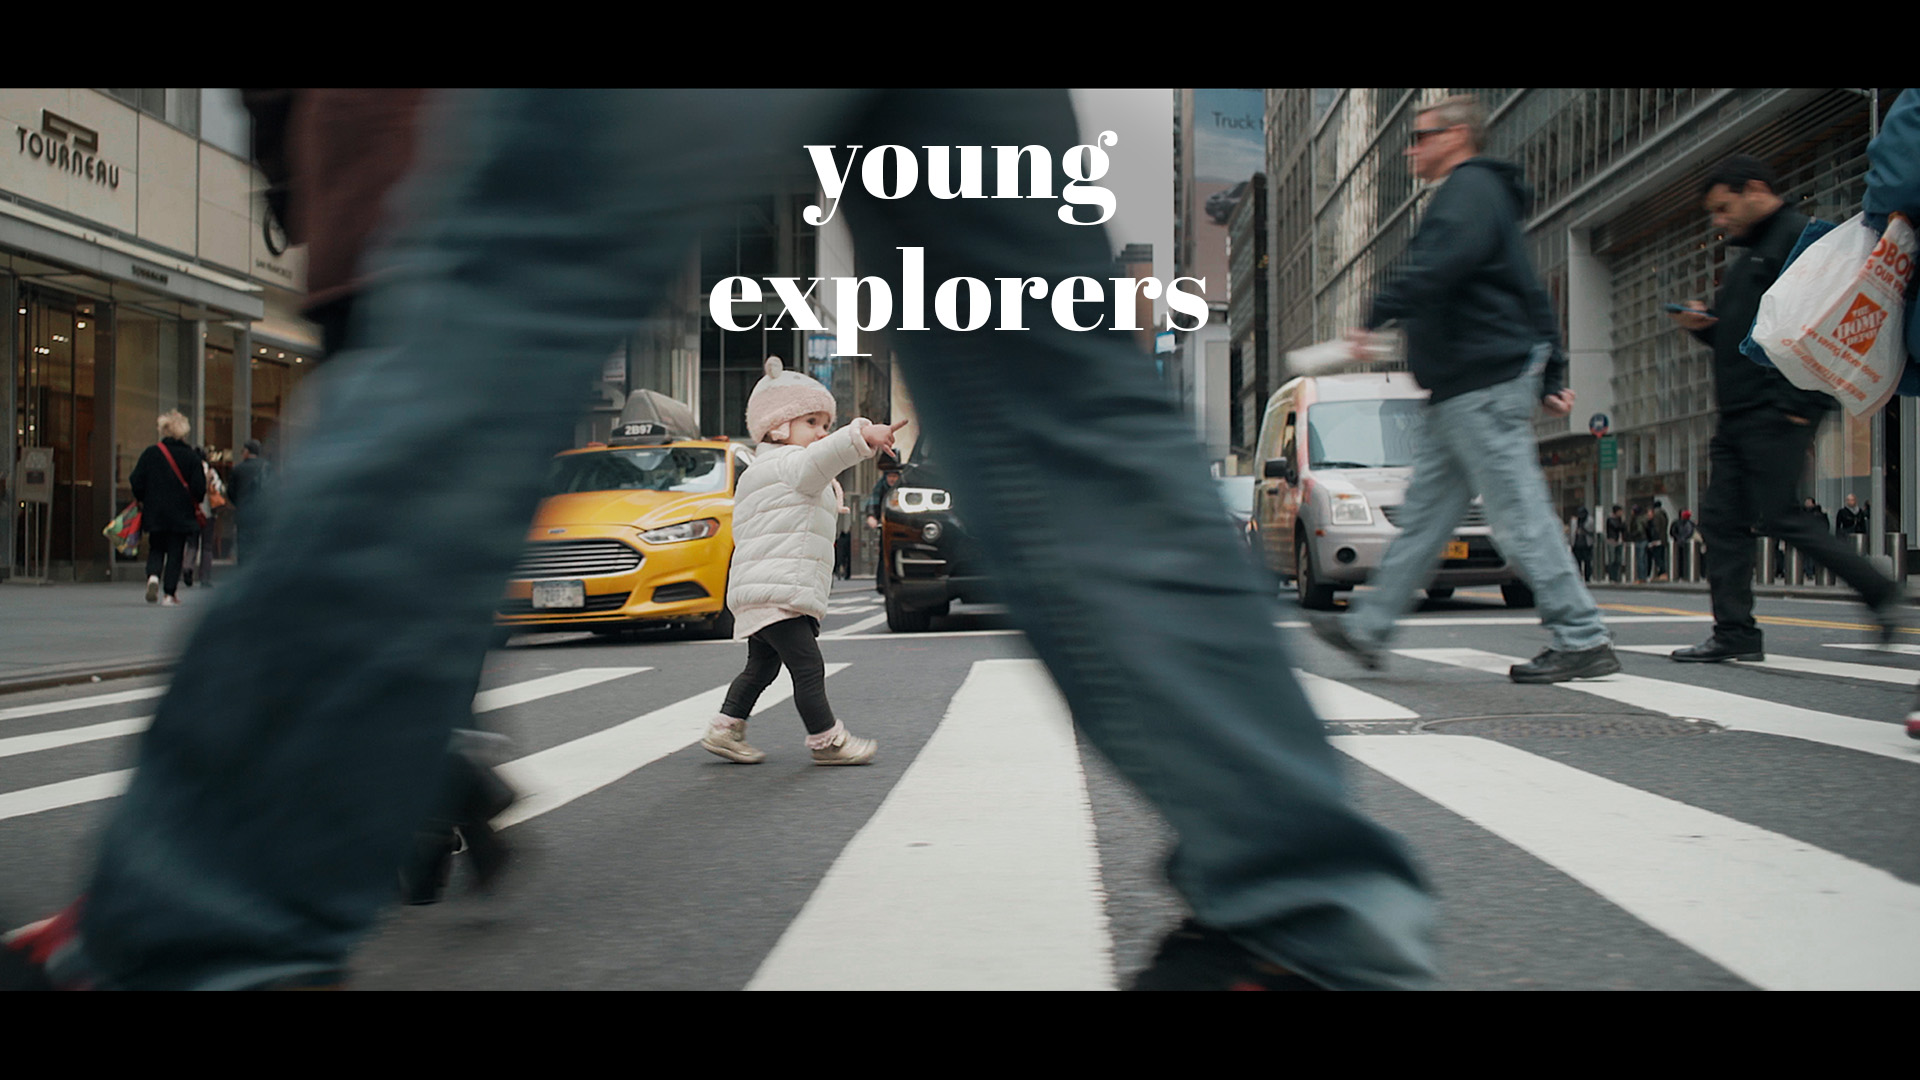 Thumb-Young Explorers_2.jpg